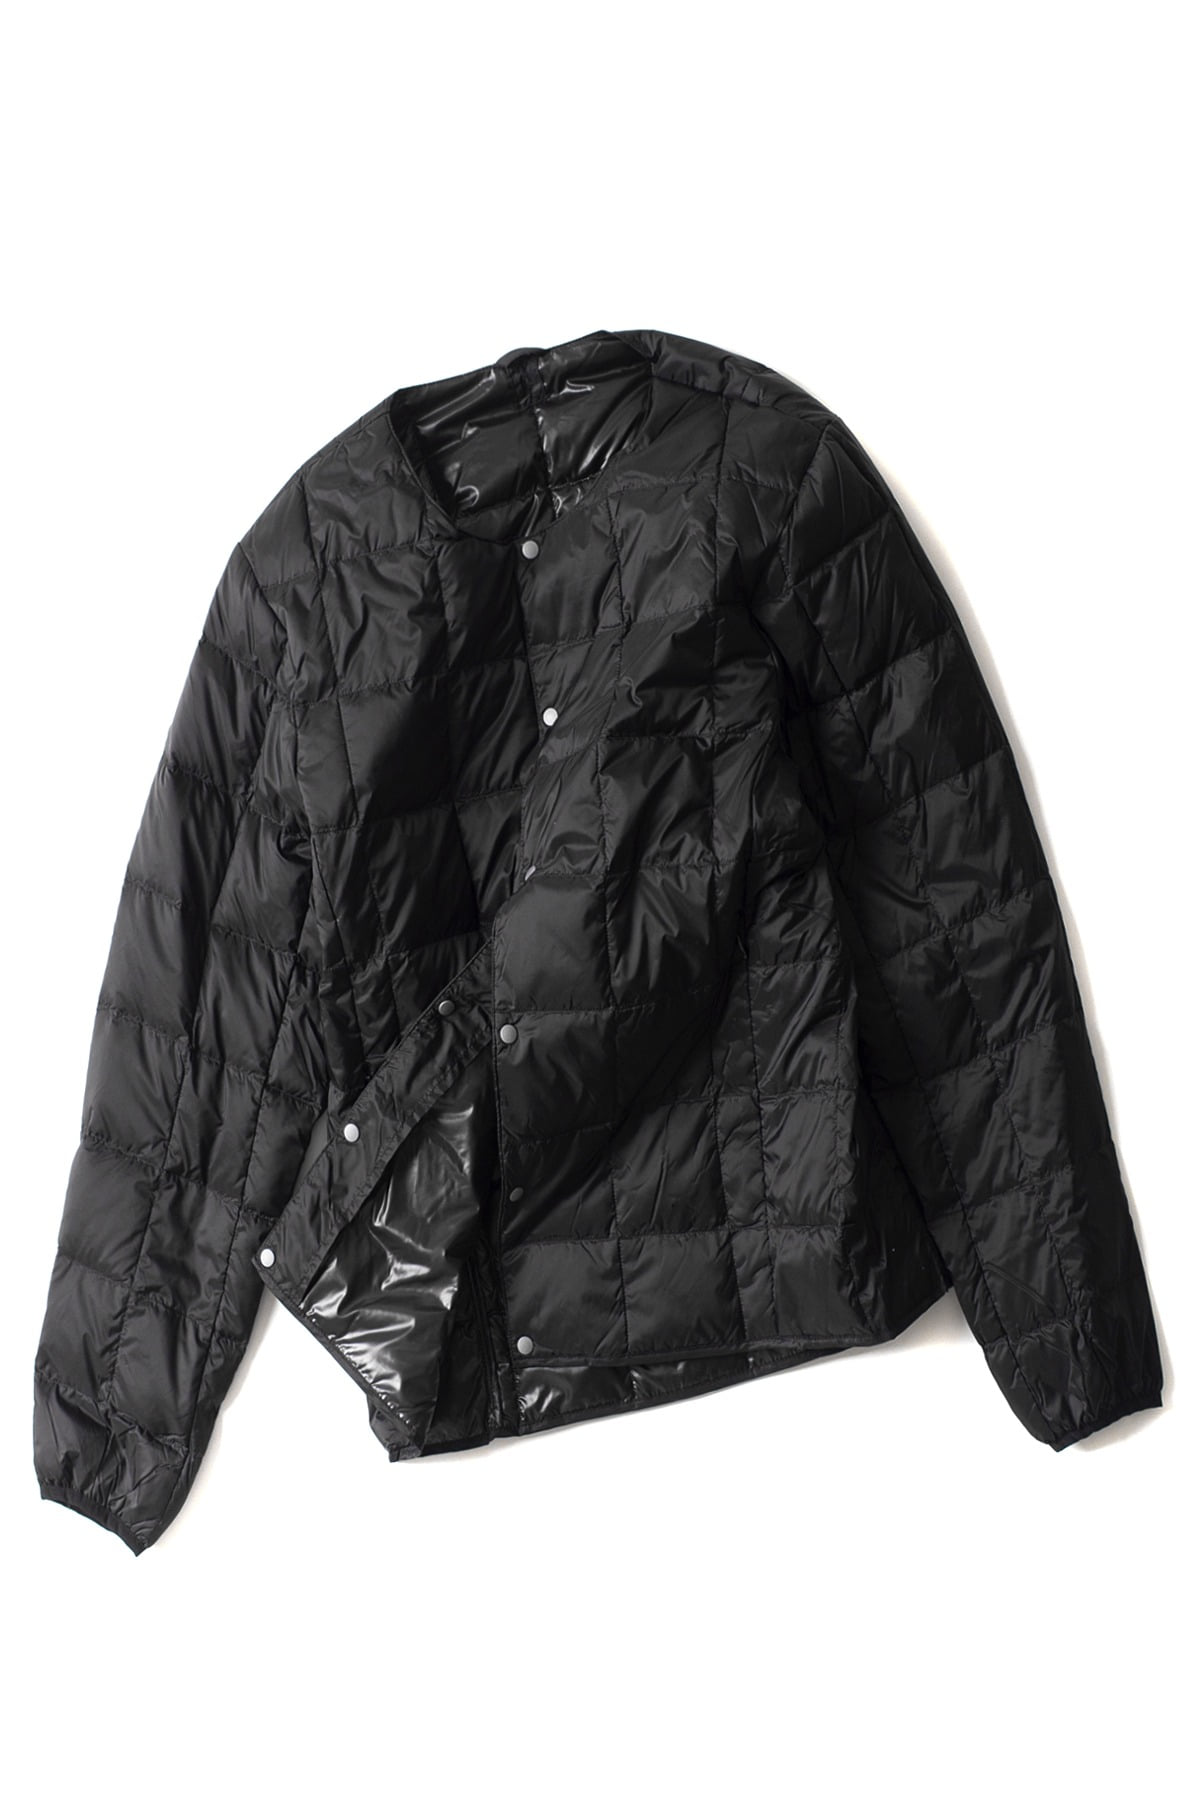 TAION : Crew Next Button Down Jacket (Black)